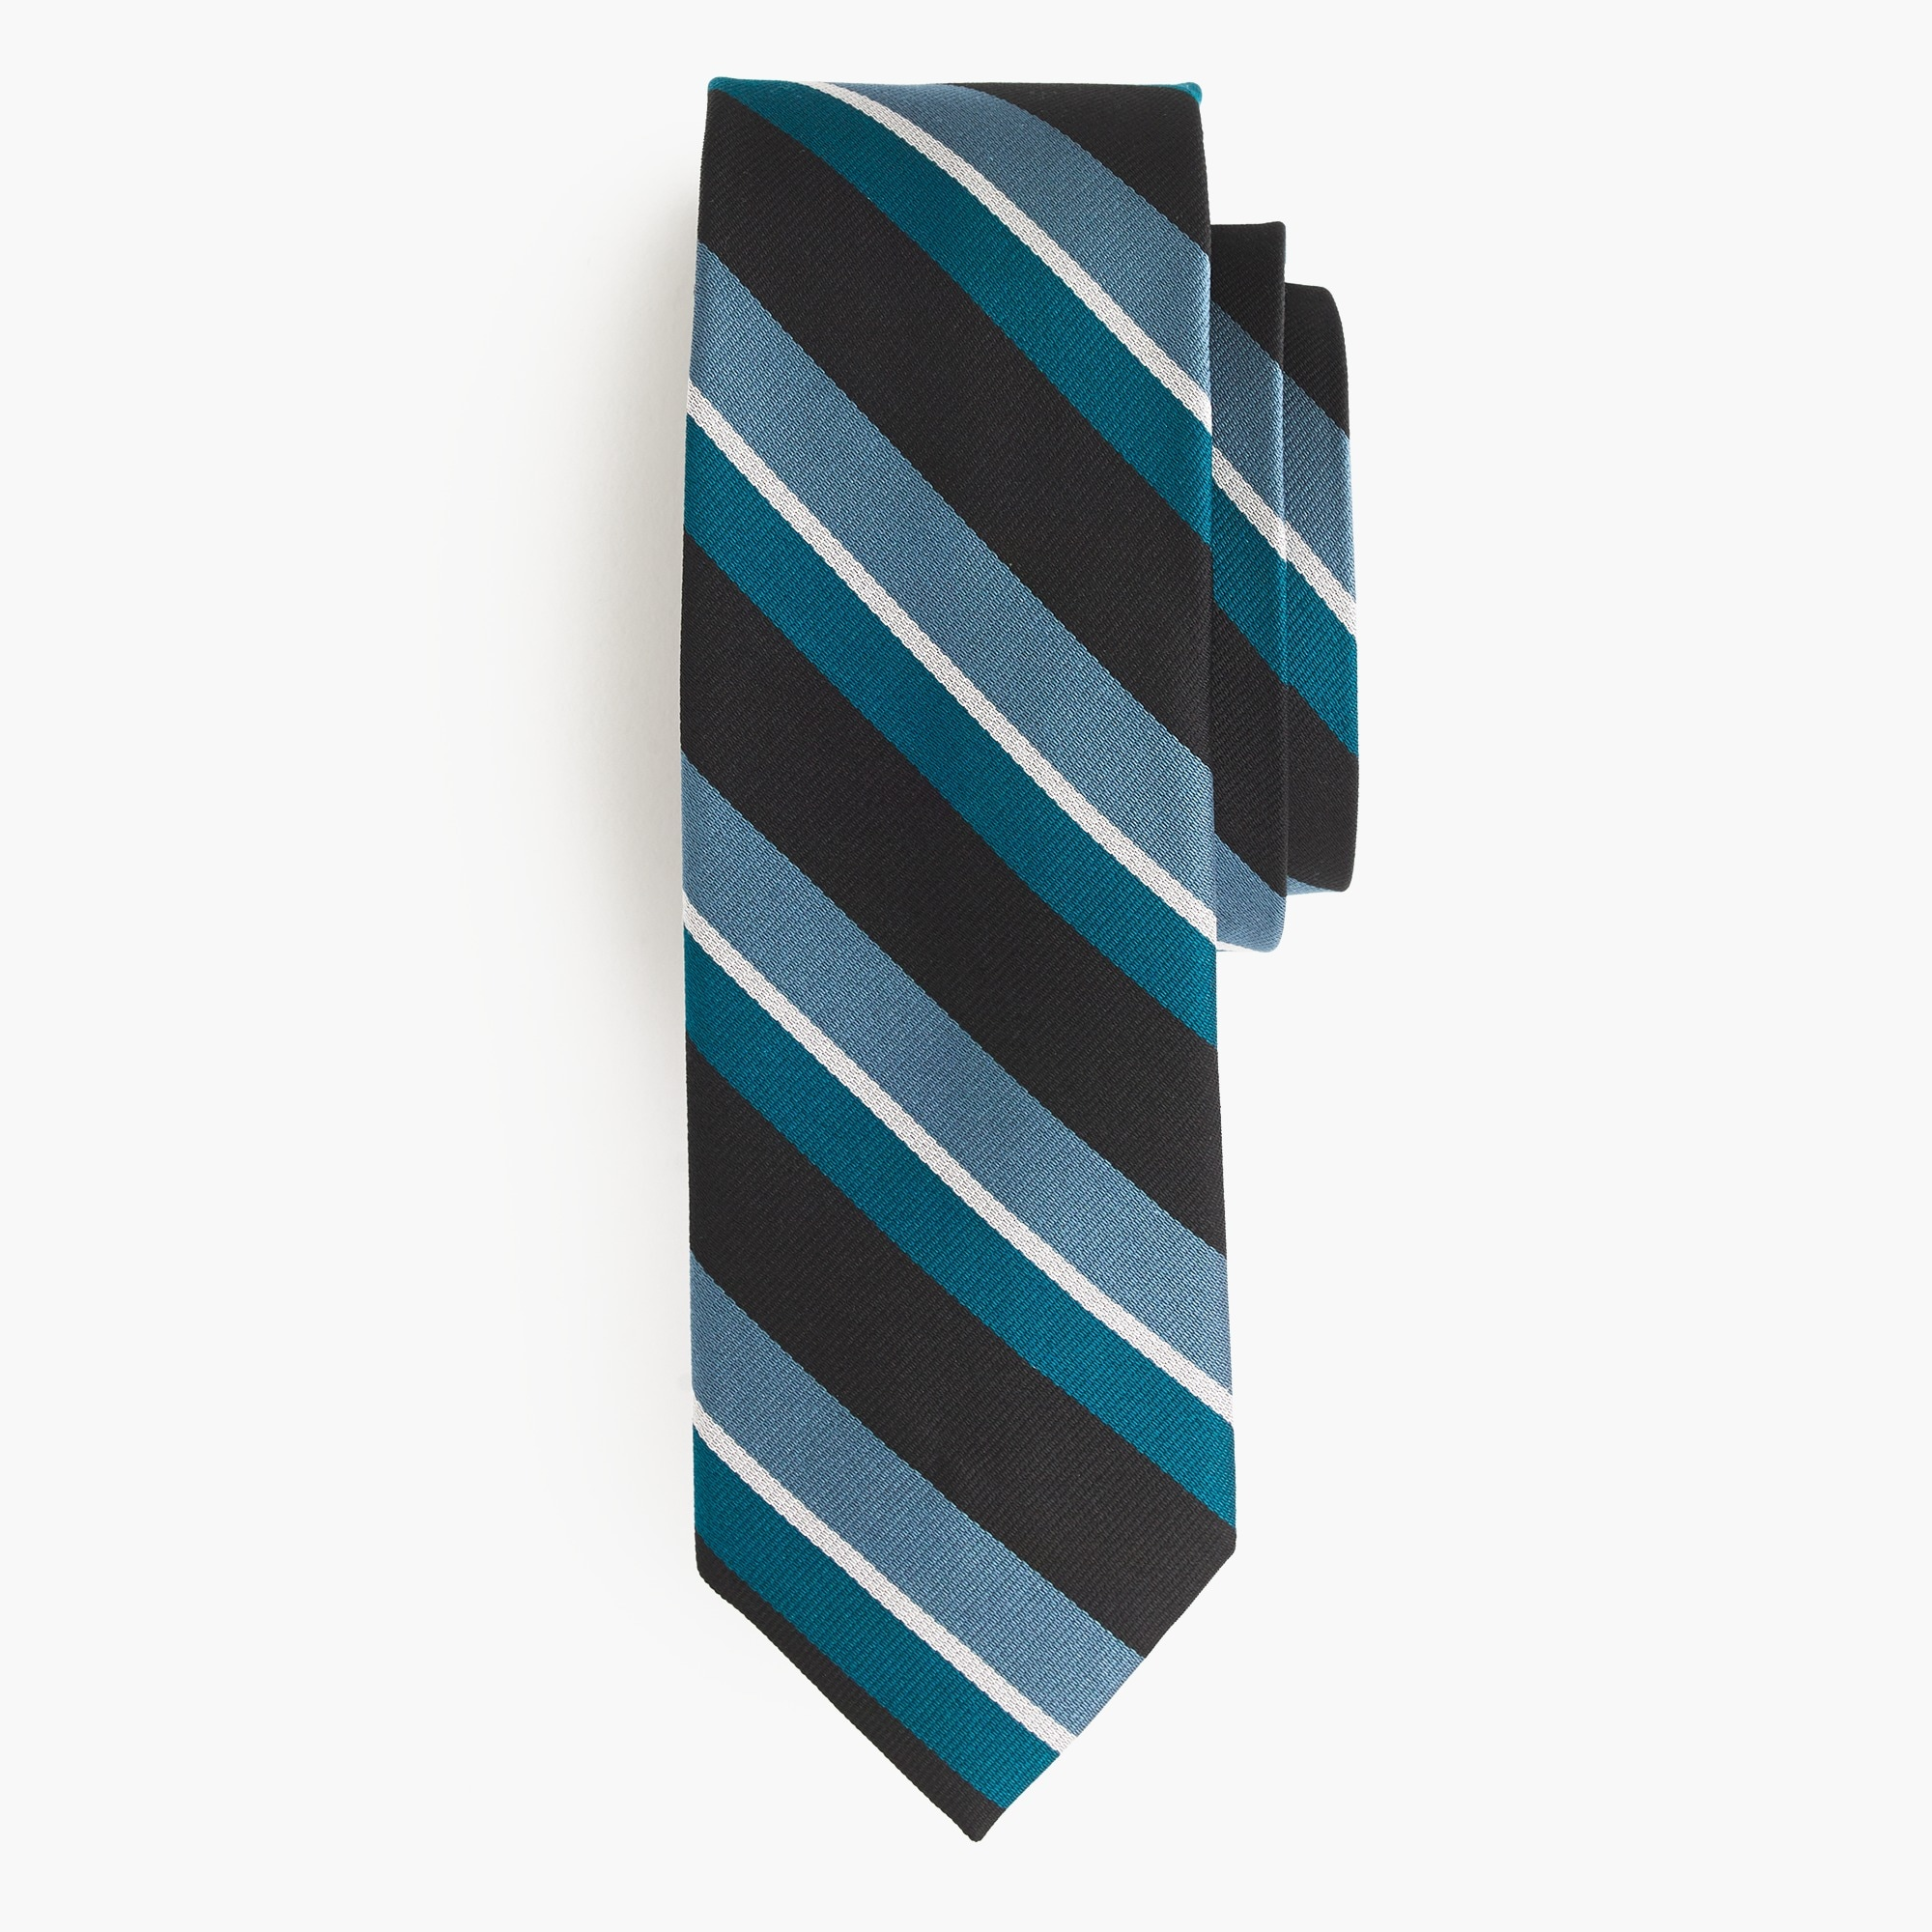 Image 1 for Silk repp tie in blue and black stripe